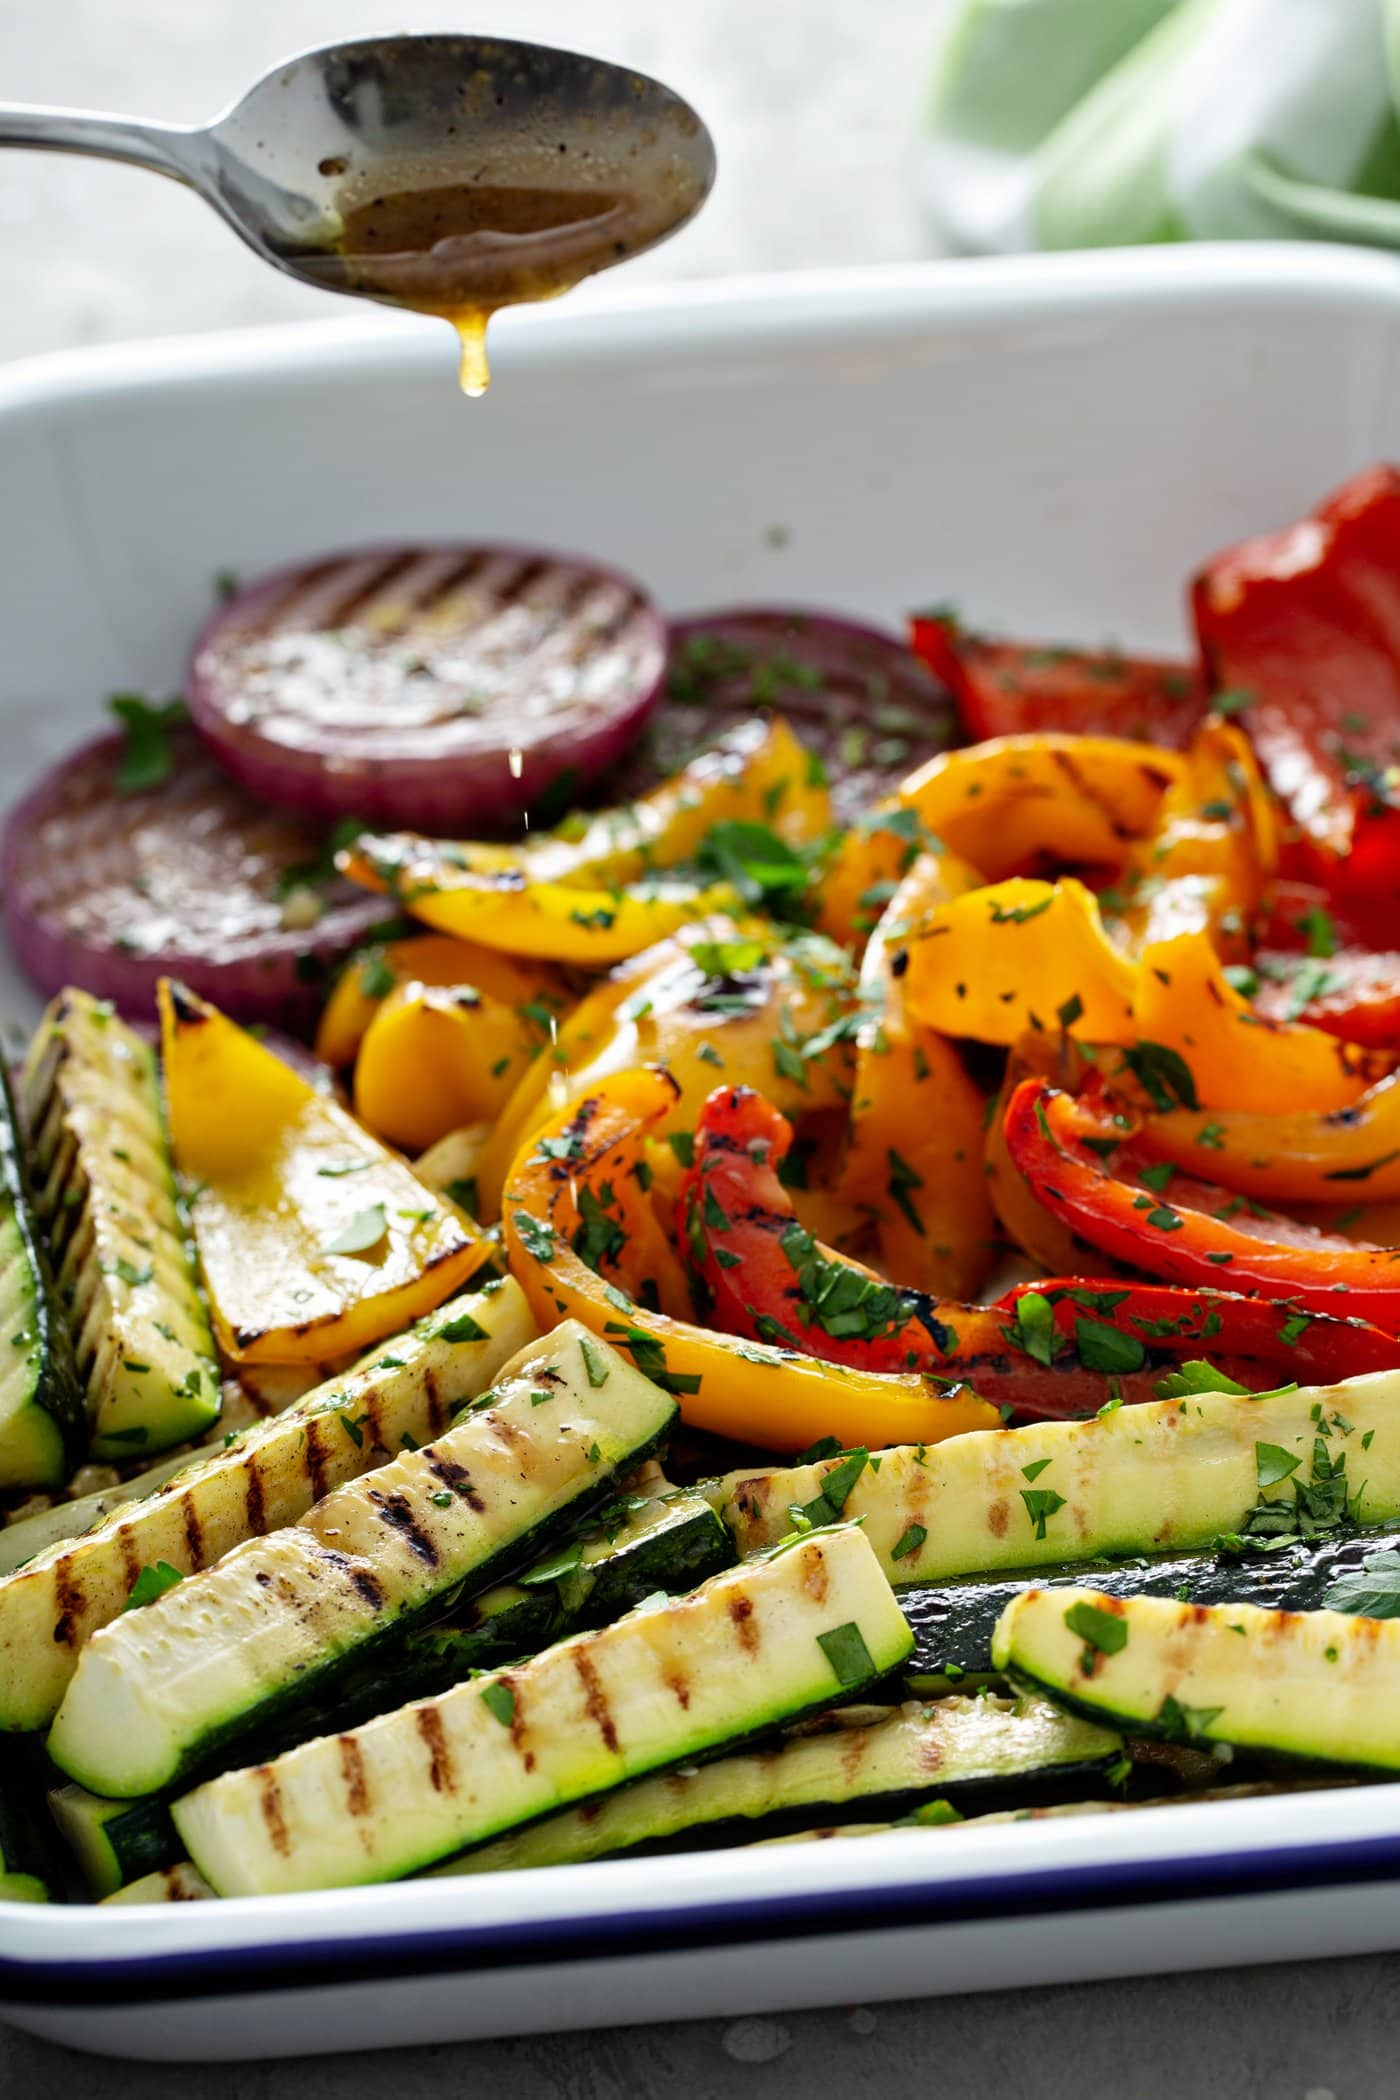 A serving dish filled with grilled veggies. The sliced red onion, zucchini wedges and red and yellow bell peppers have wonderful grill marks and there are parsley leaves scattered on top of the veggies.